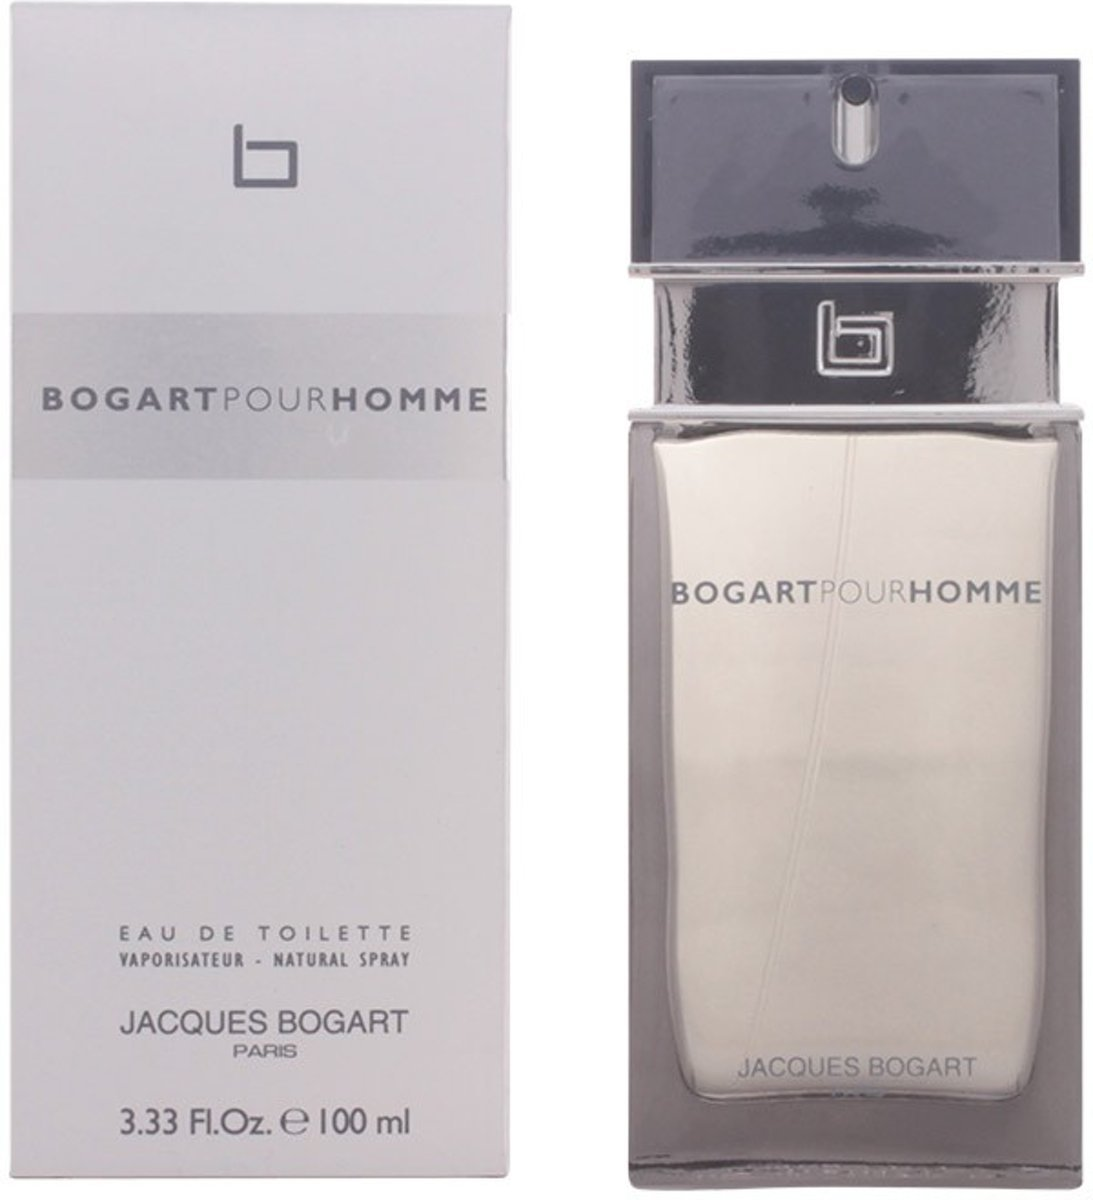 Bogart Pour Homme By Jacques Bogart Edt Spray  - Fragrances For Men